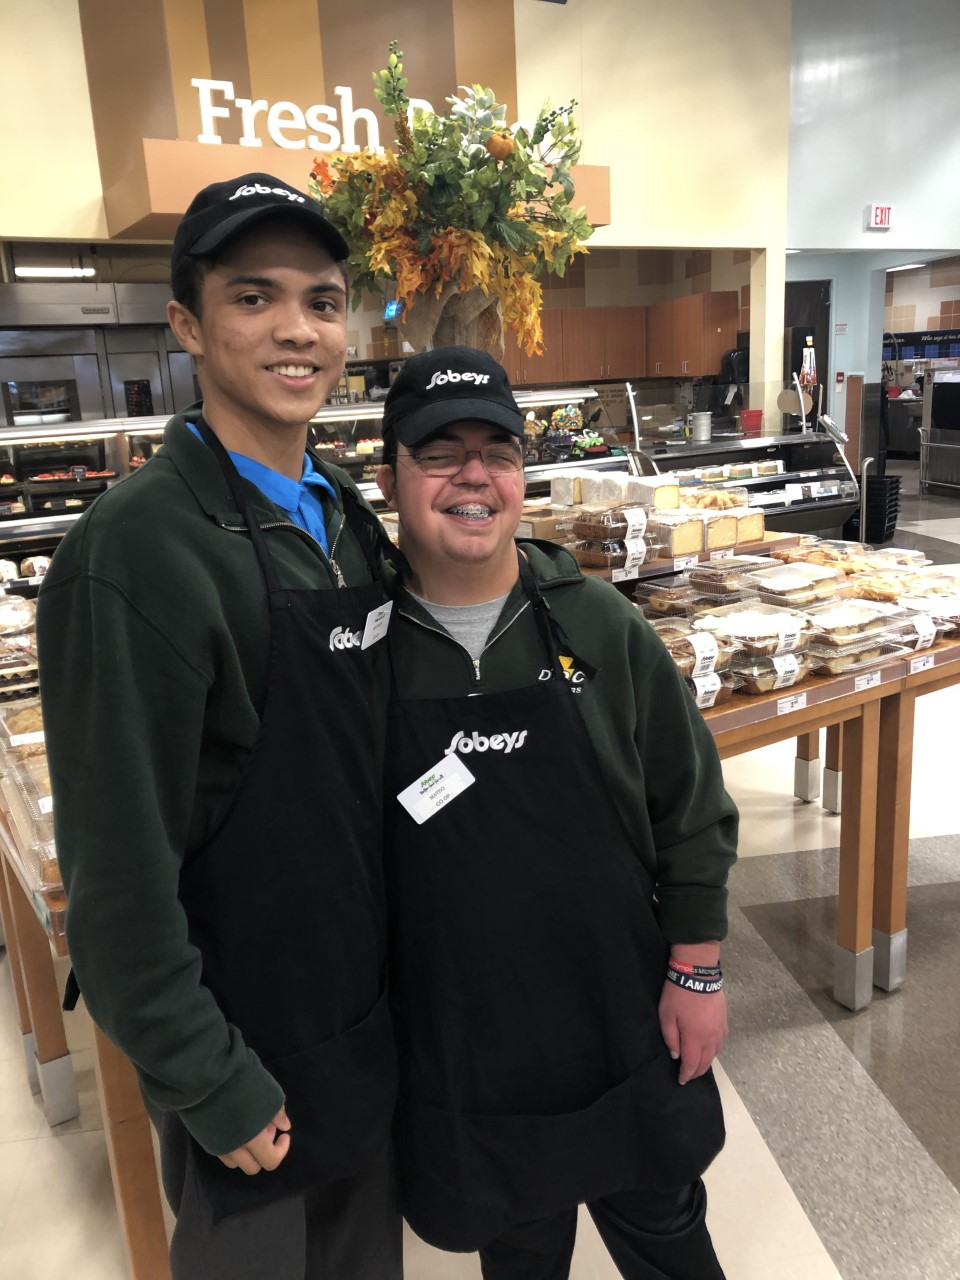 Two male students working in a bakery area of a grocery store